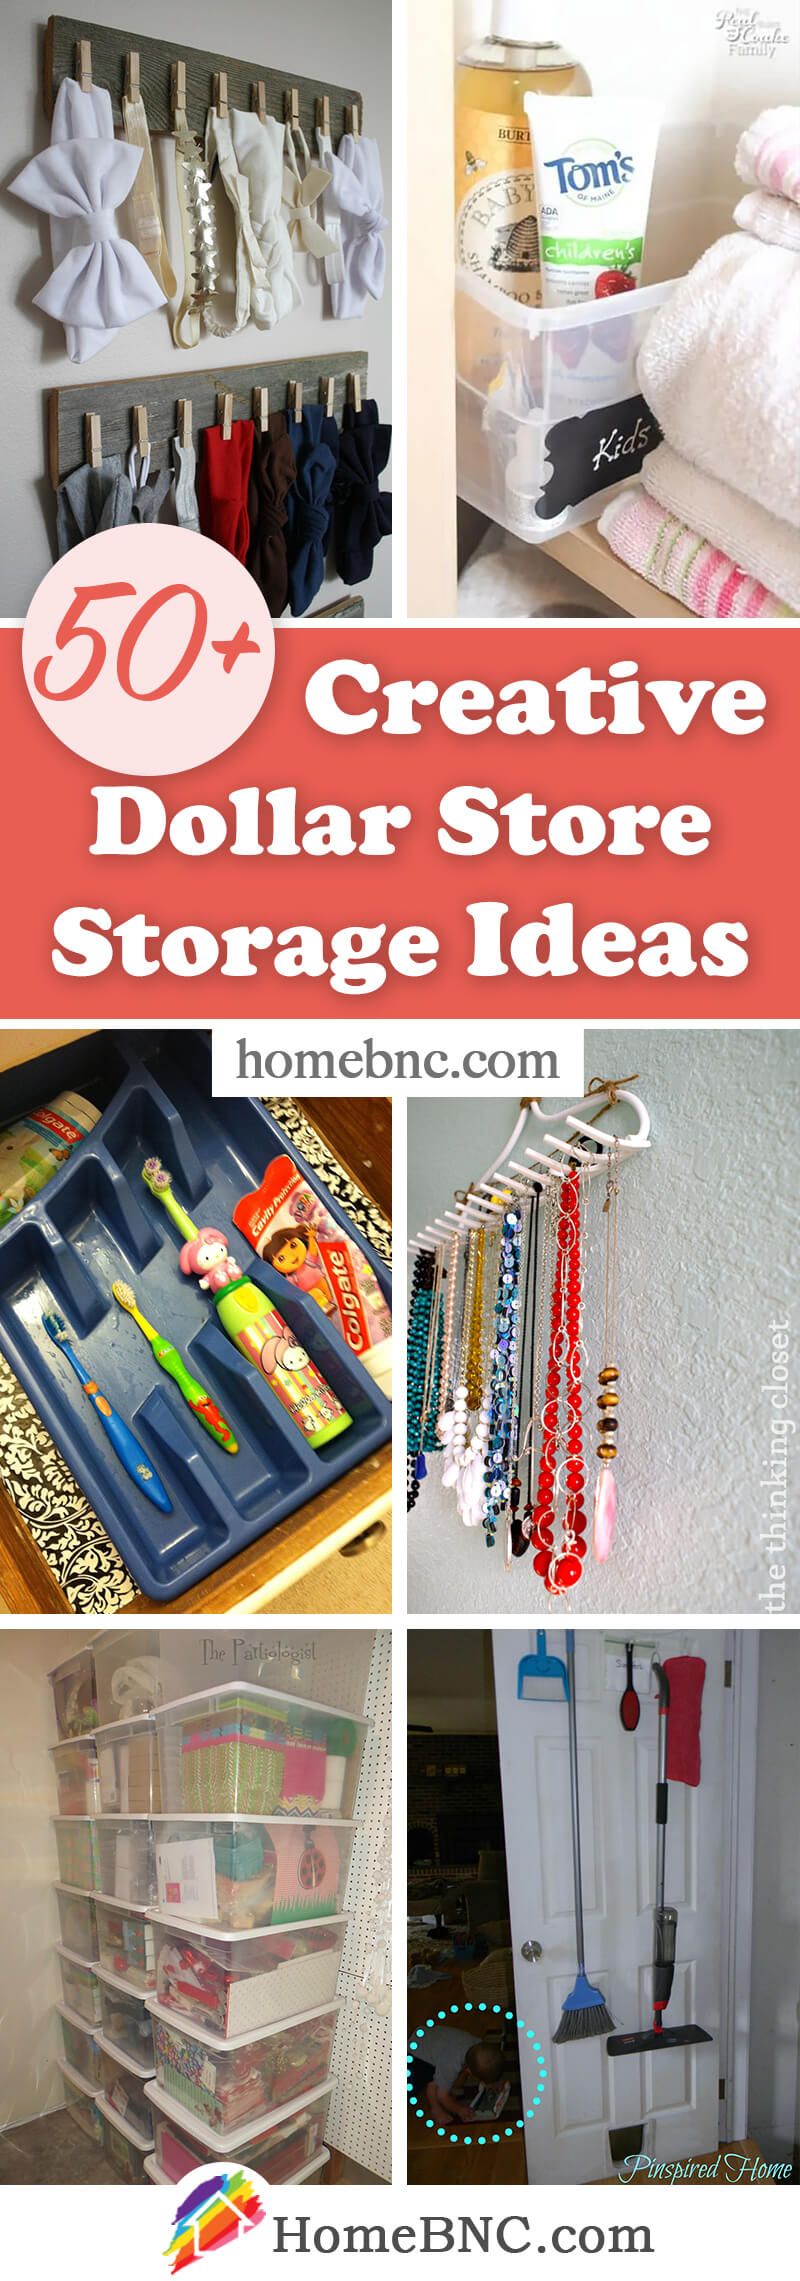 50 Best Dollar Store Organization And Storage Ideas For 2021